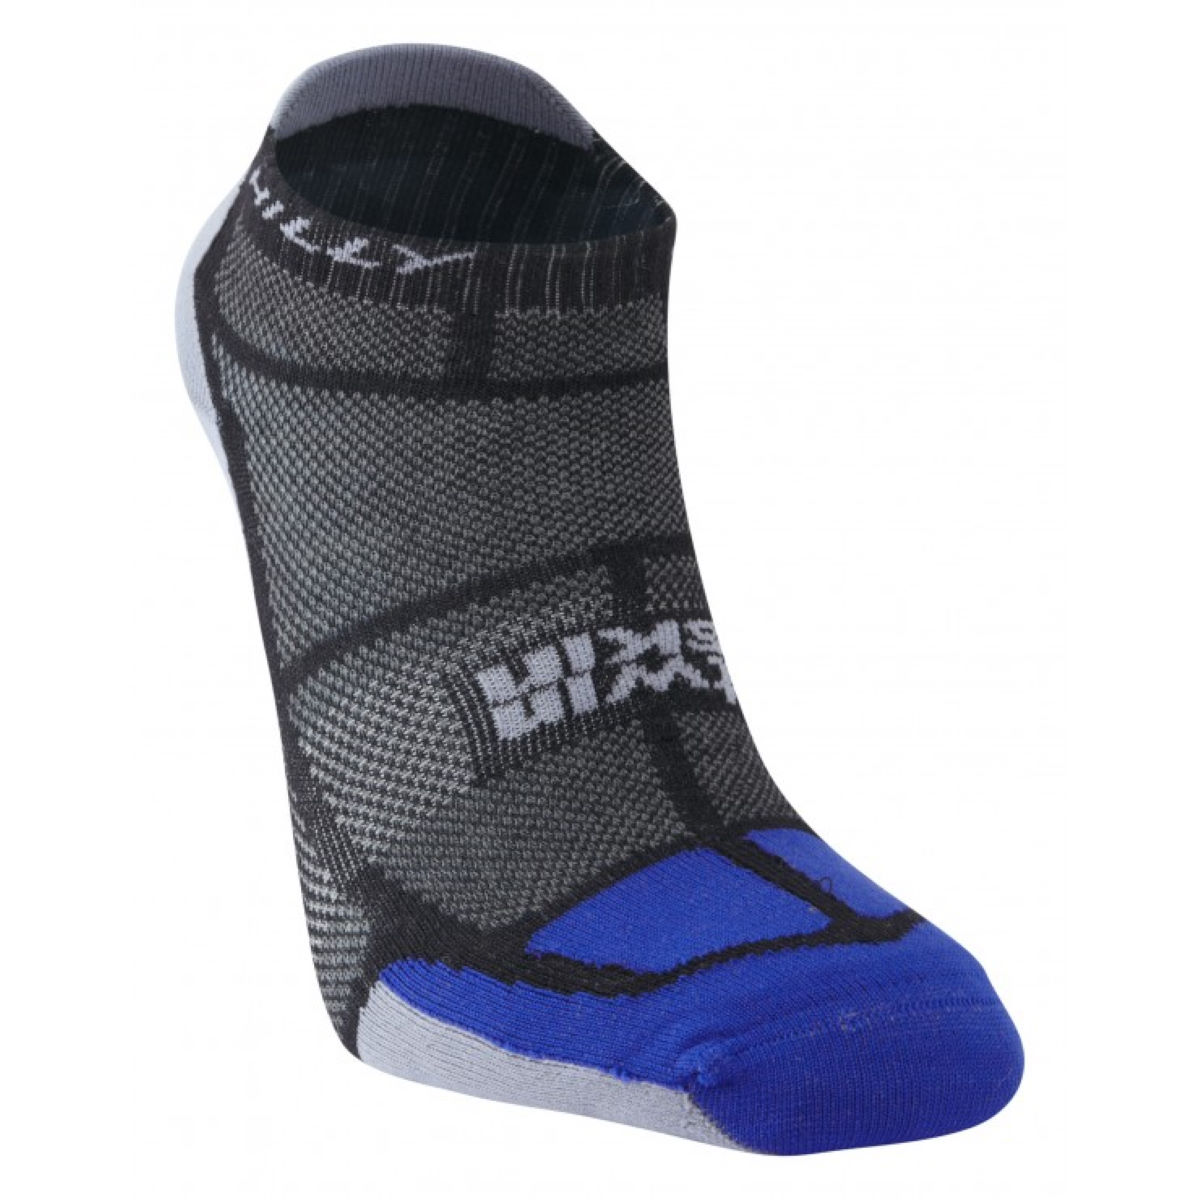 Chaussettes Hilly TwinSkin - S Black/Blue/Grey  Chaussettes